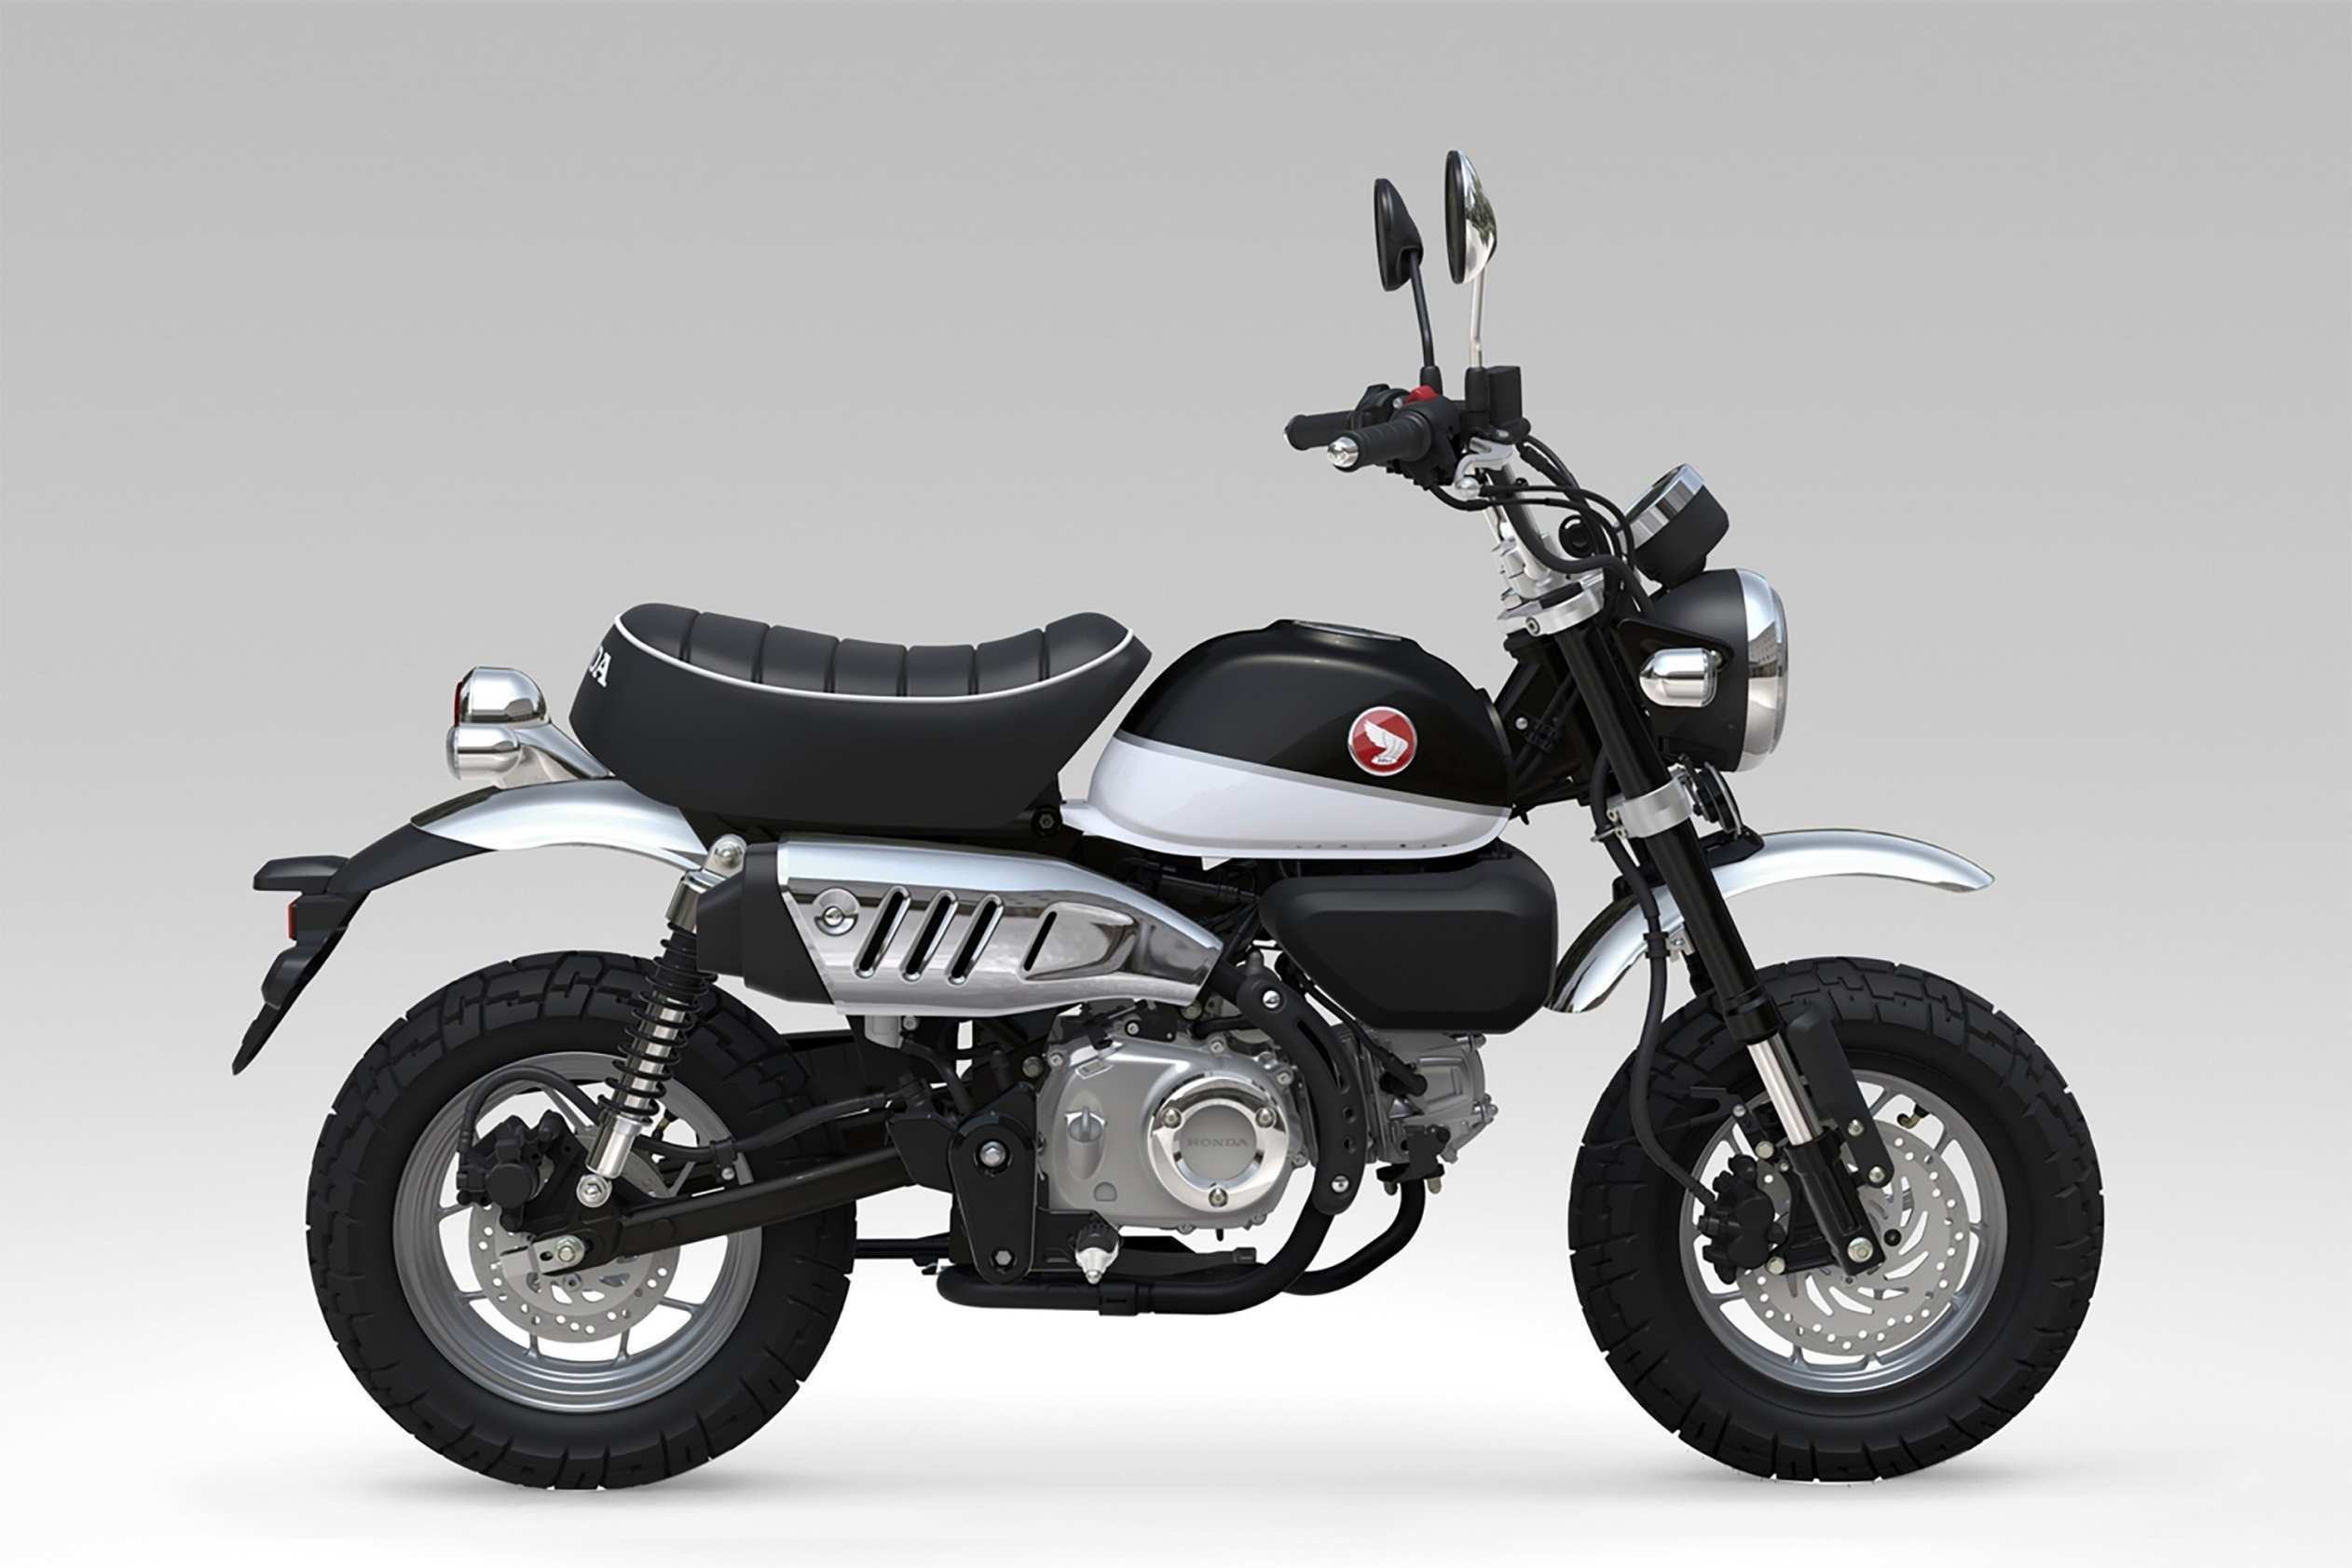 18 New Monkey Honda 2019 Price Pricing with Monkey Honda 2019 Price